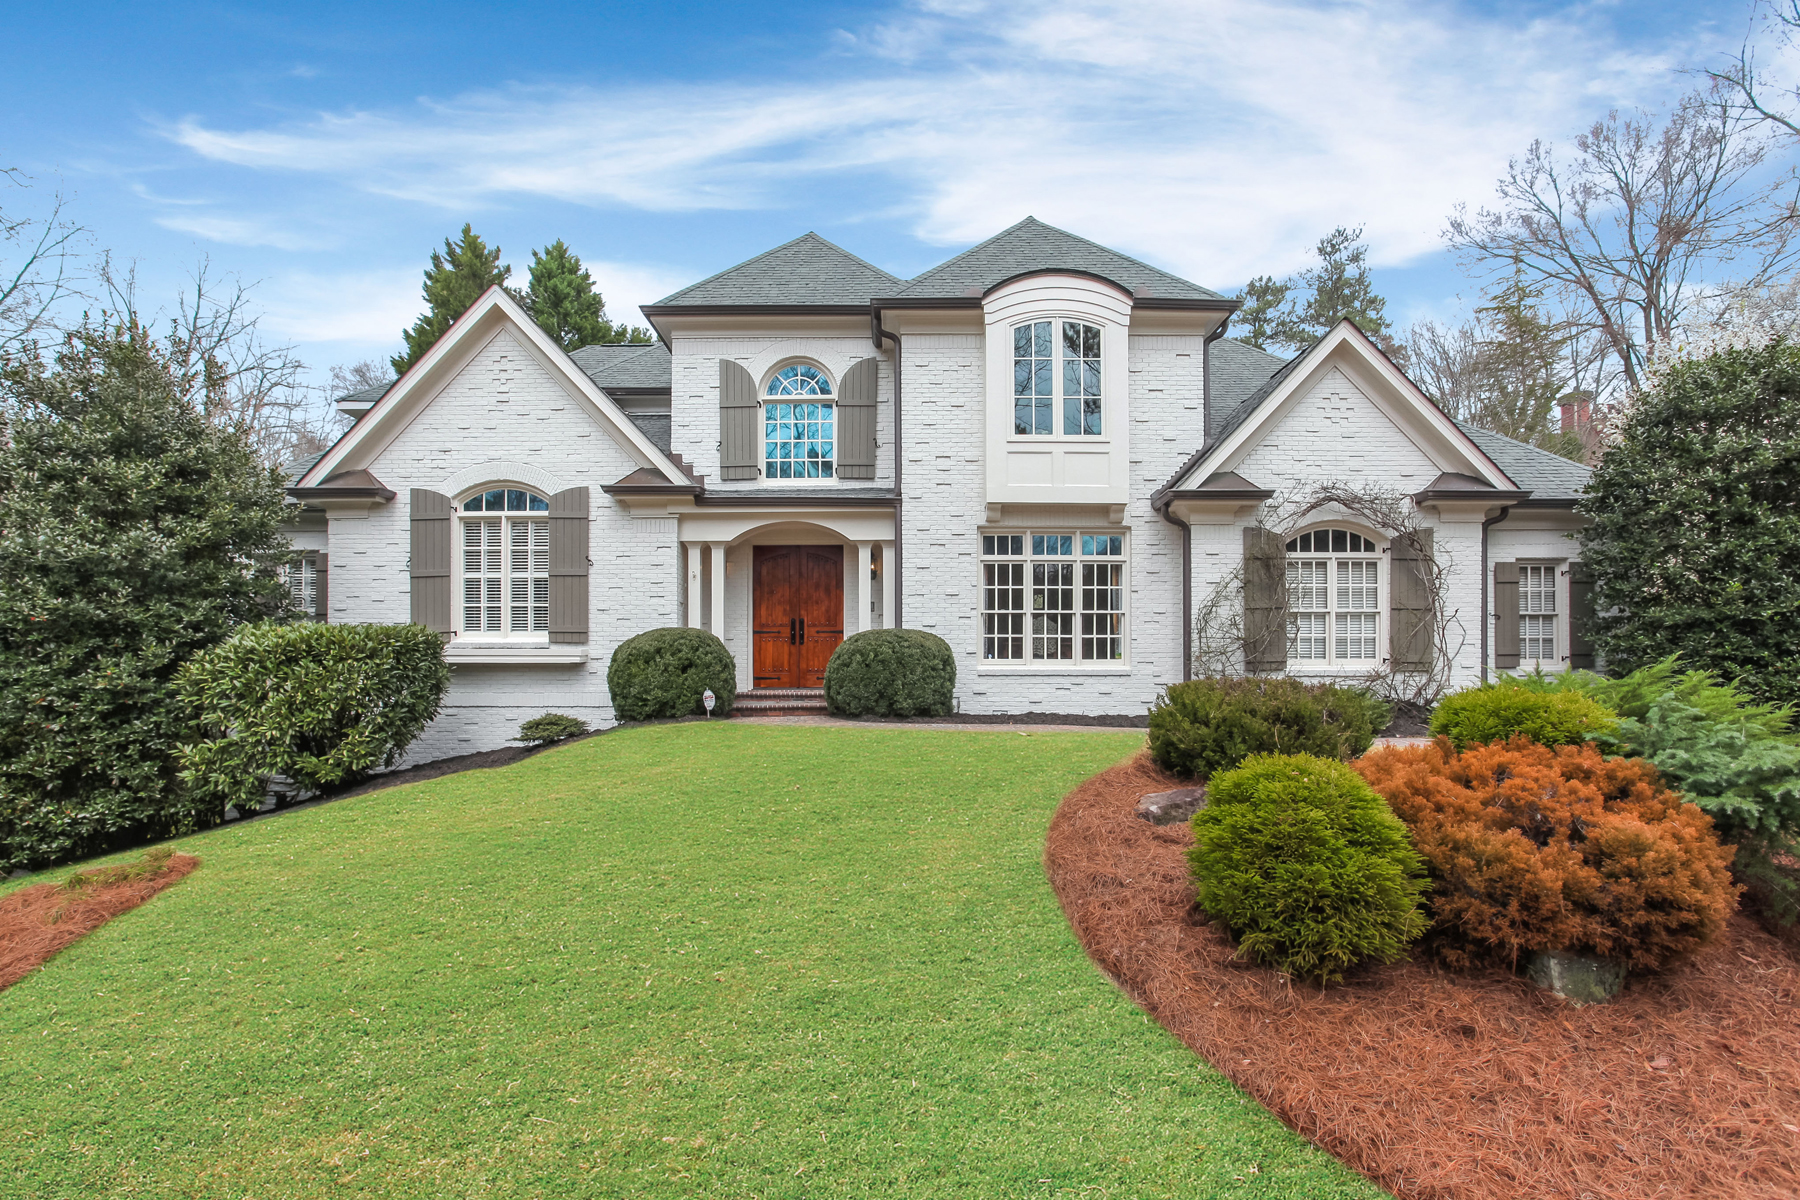 Single Family Homes for Sale at Stunning Home on 1.1+/- Acre Lot in Sandy Springs 495 Londonberry Road Sandy Springs, Georgia 30327 United States